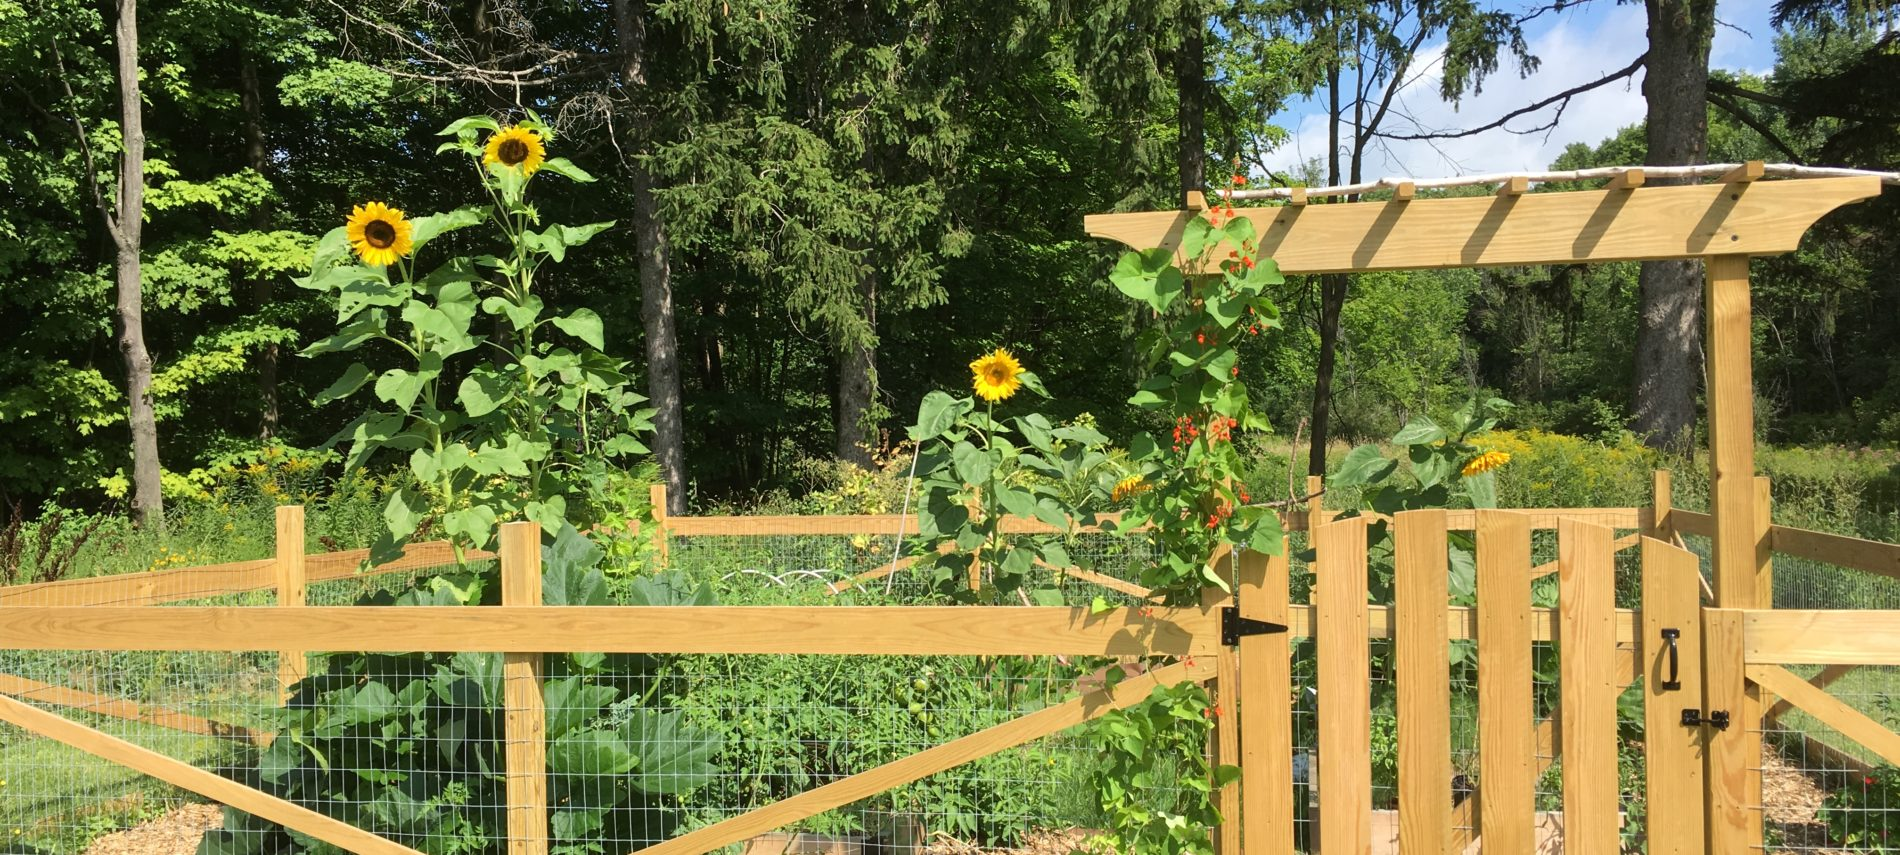 A pagoda style wood garden gate with sunflowers, and the woods beyond, on a sunny day.